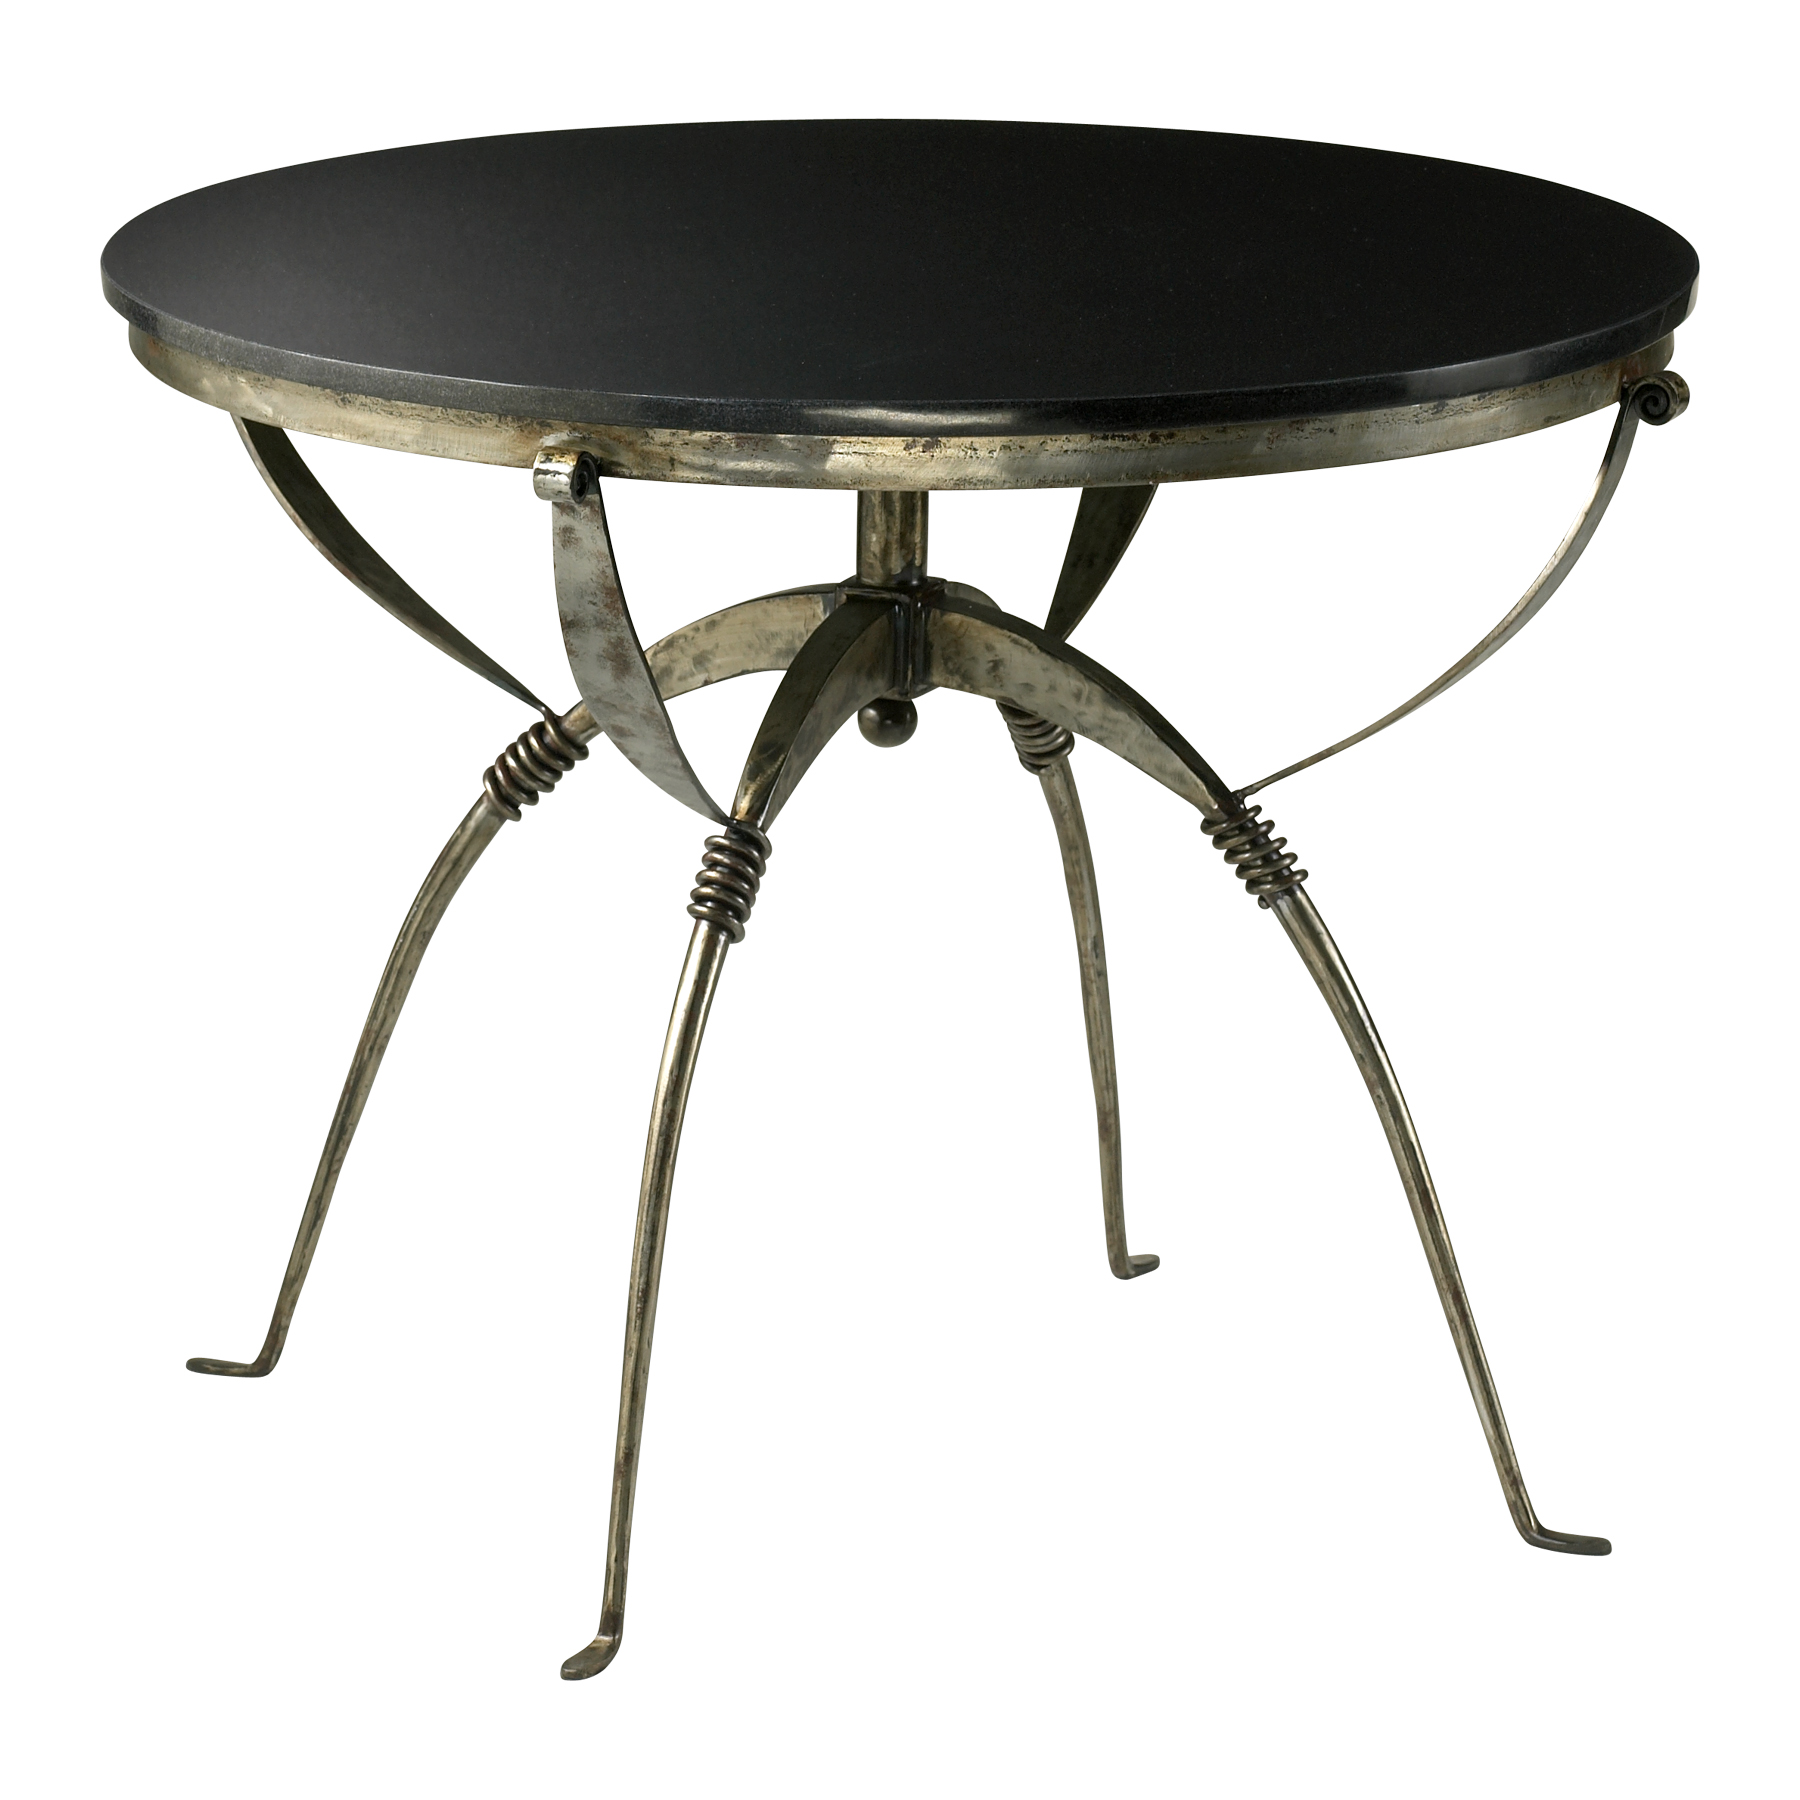 industrial style iron granite round accent table large deck pottery barn bar pewter side owings console shelf espresso outdoor recliner coffee with storage end design plans chest